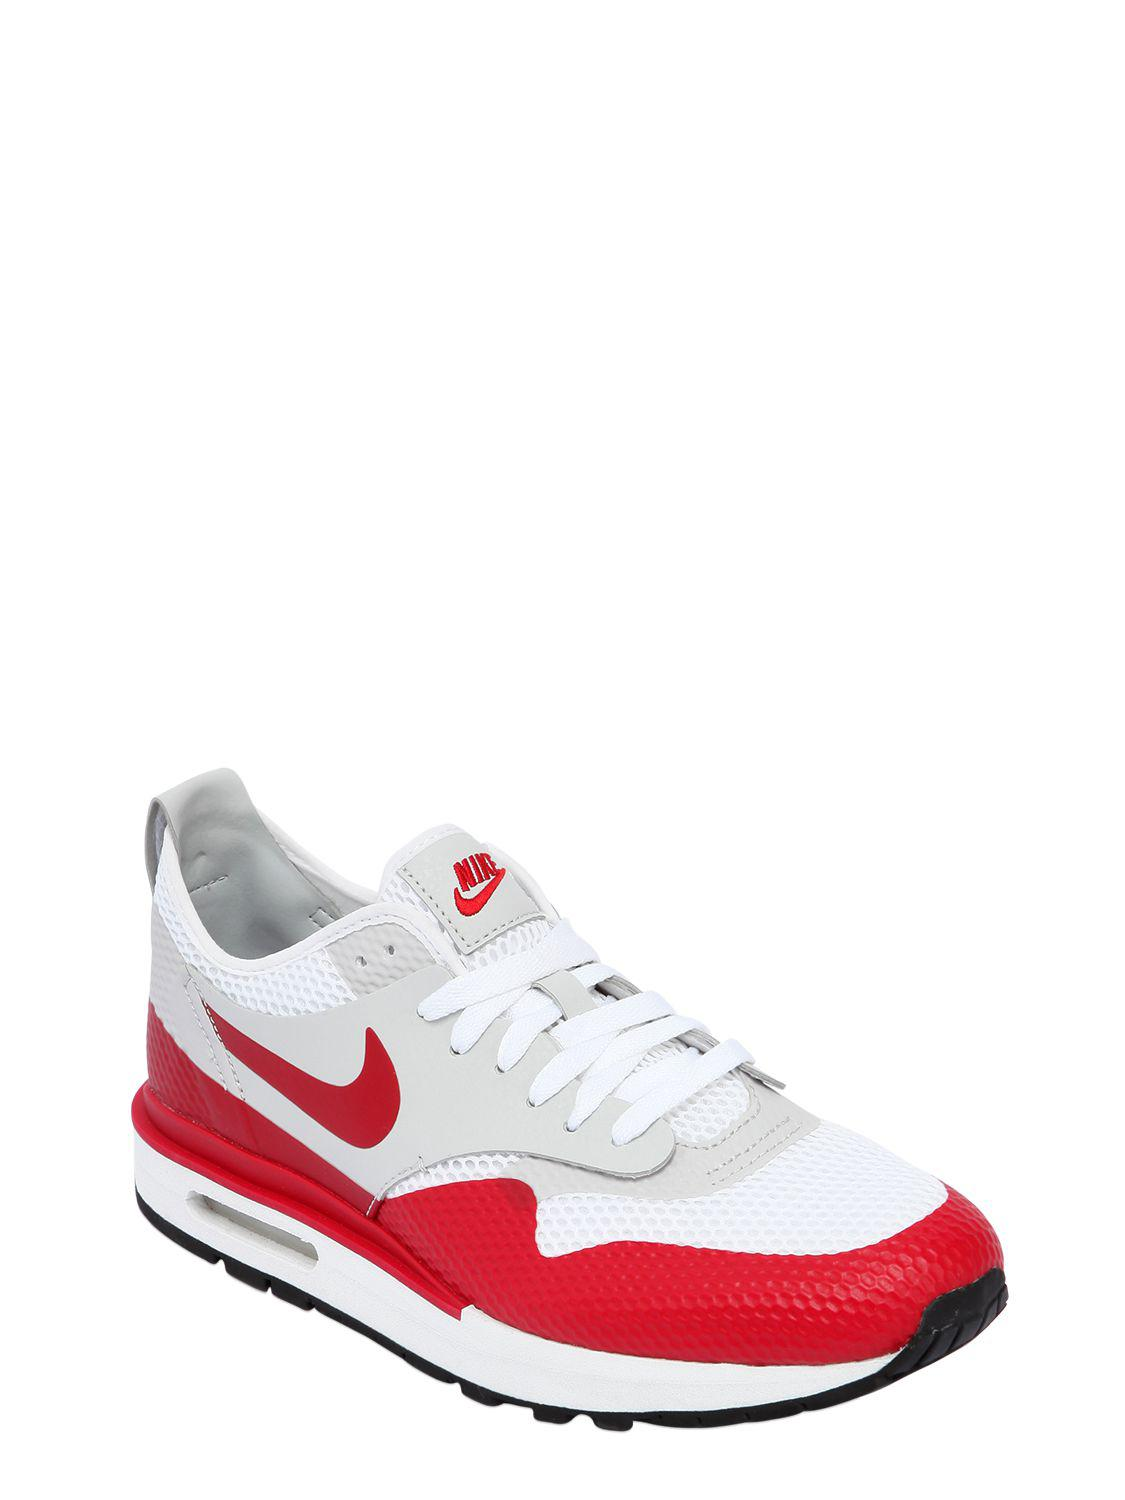 38681724b3013 Nike Air Max Royal 1 Se Sp Sneakers in White for Men - Lyst